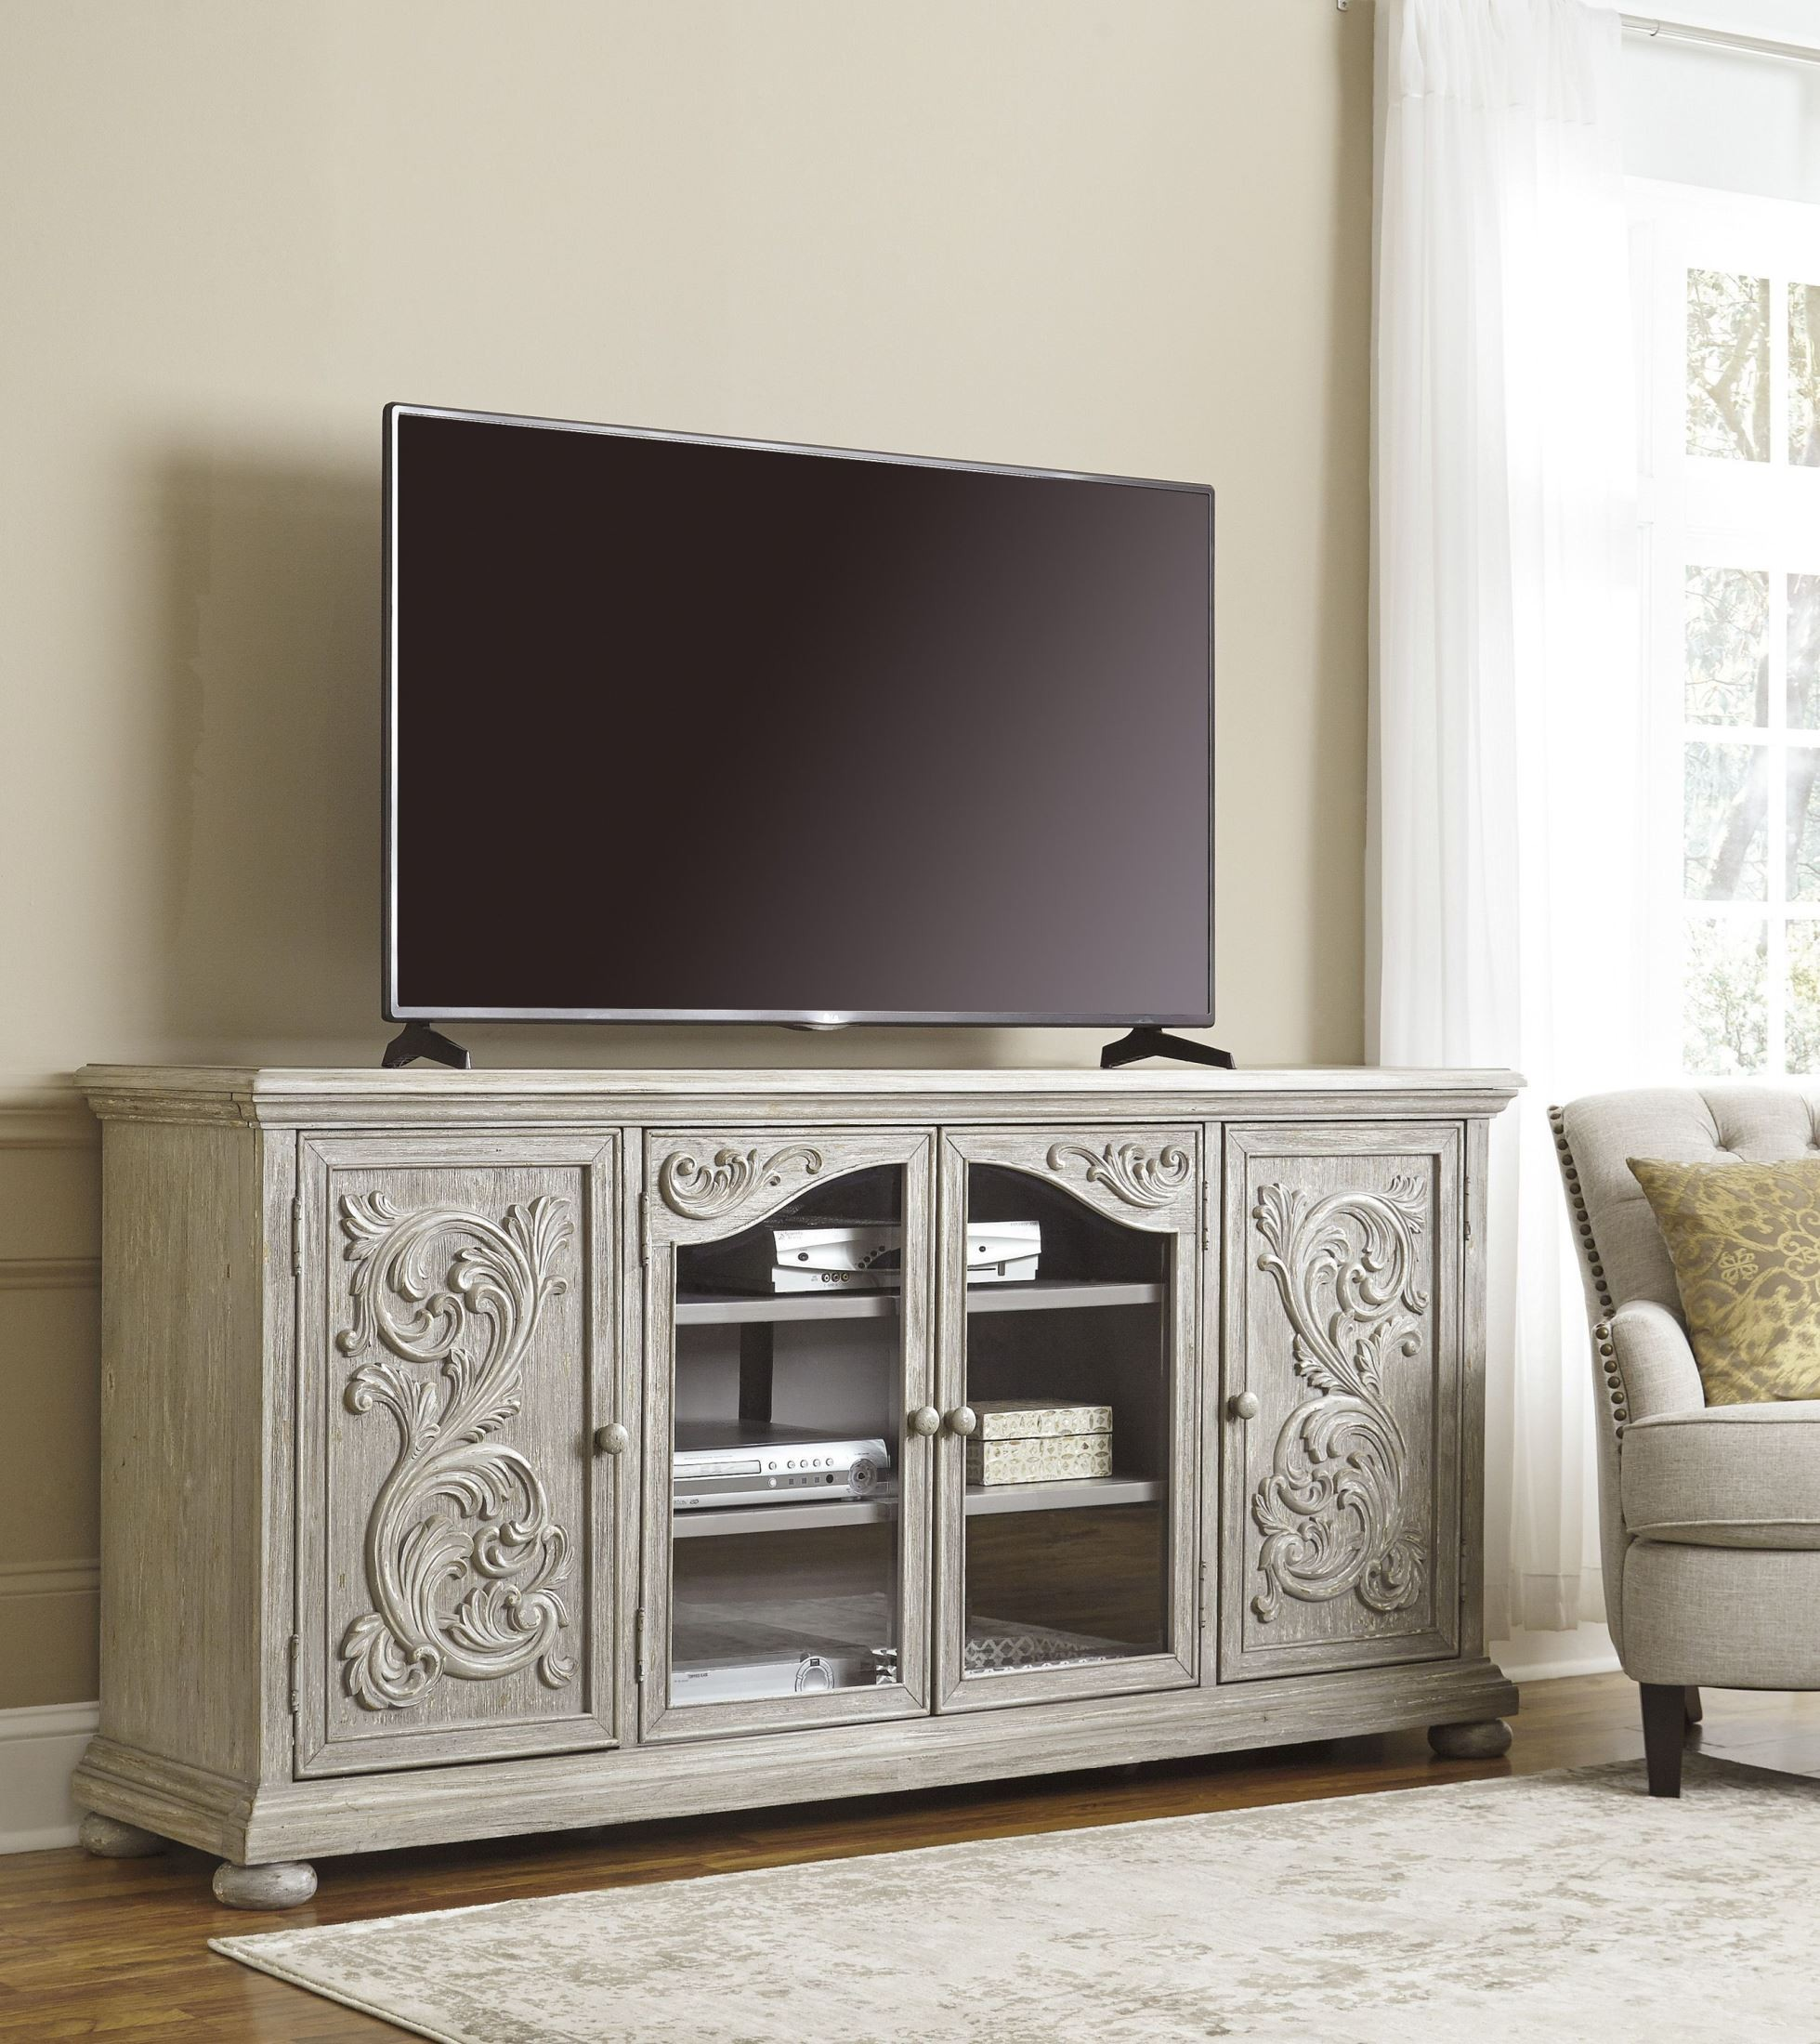 Marleny Gray Extra Large Tv Stand From Ashley Coleman